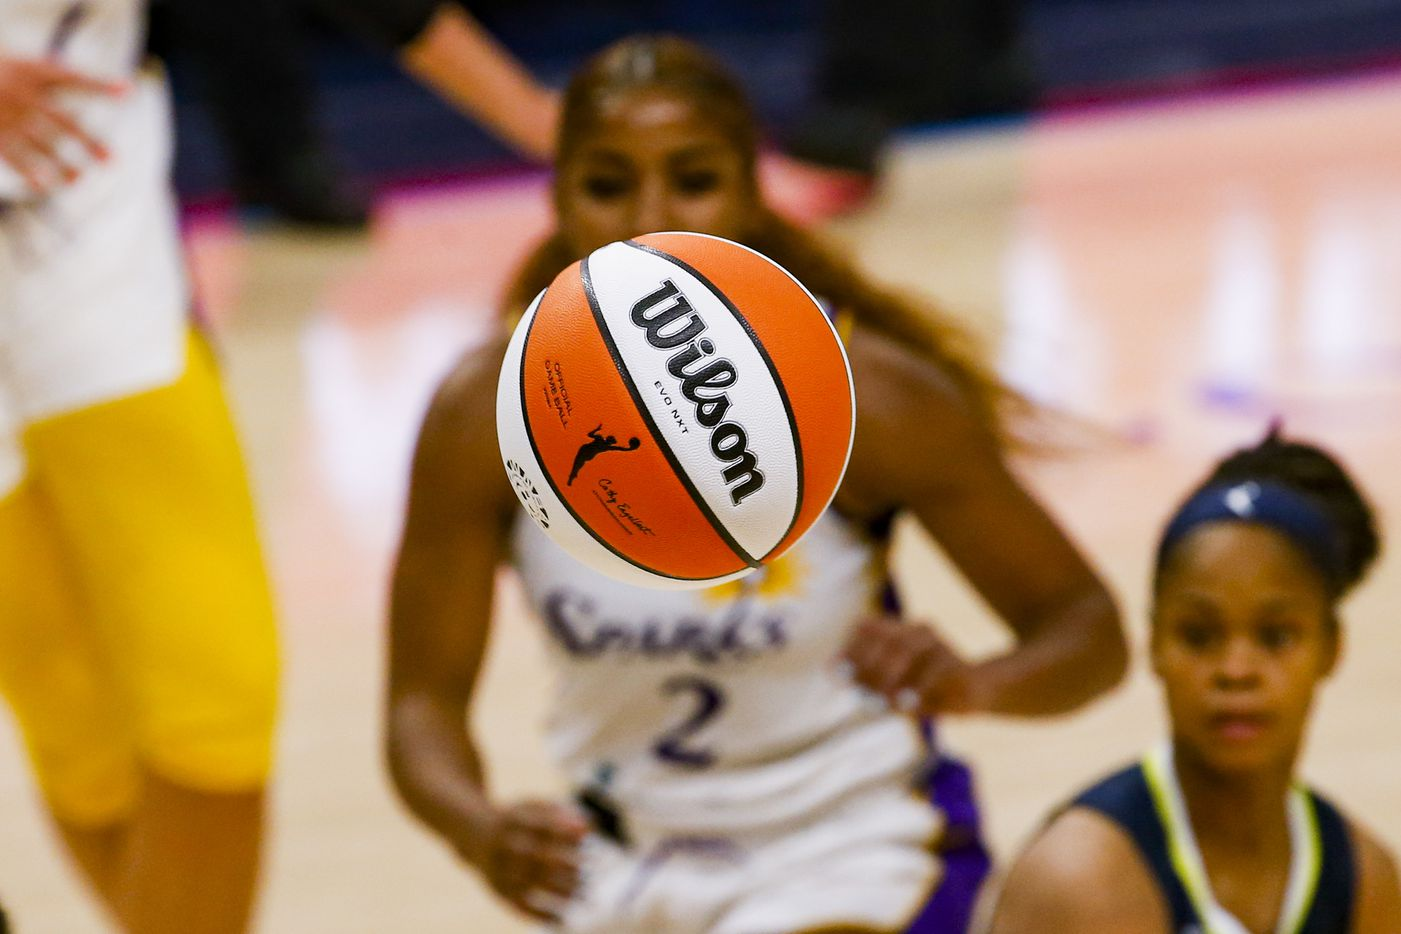 Players watch the ball during the fourth quarter of a Dallas Wings against the Los Angeles Sparks game at College Park Center on Tuesday, June 1, 2021, in Arlington. (Juan Figueroa/The Dallas Morning News)